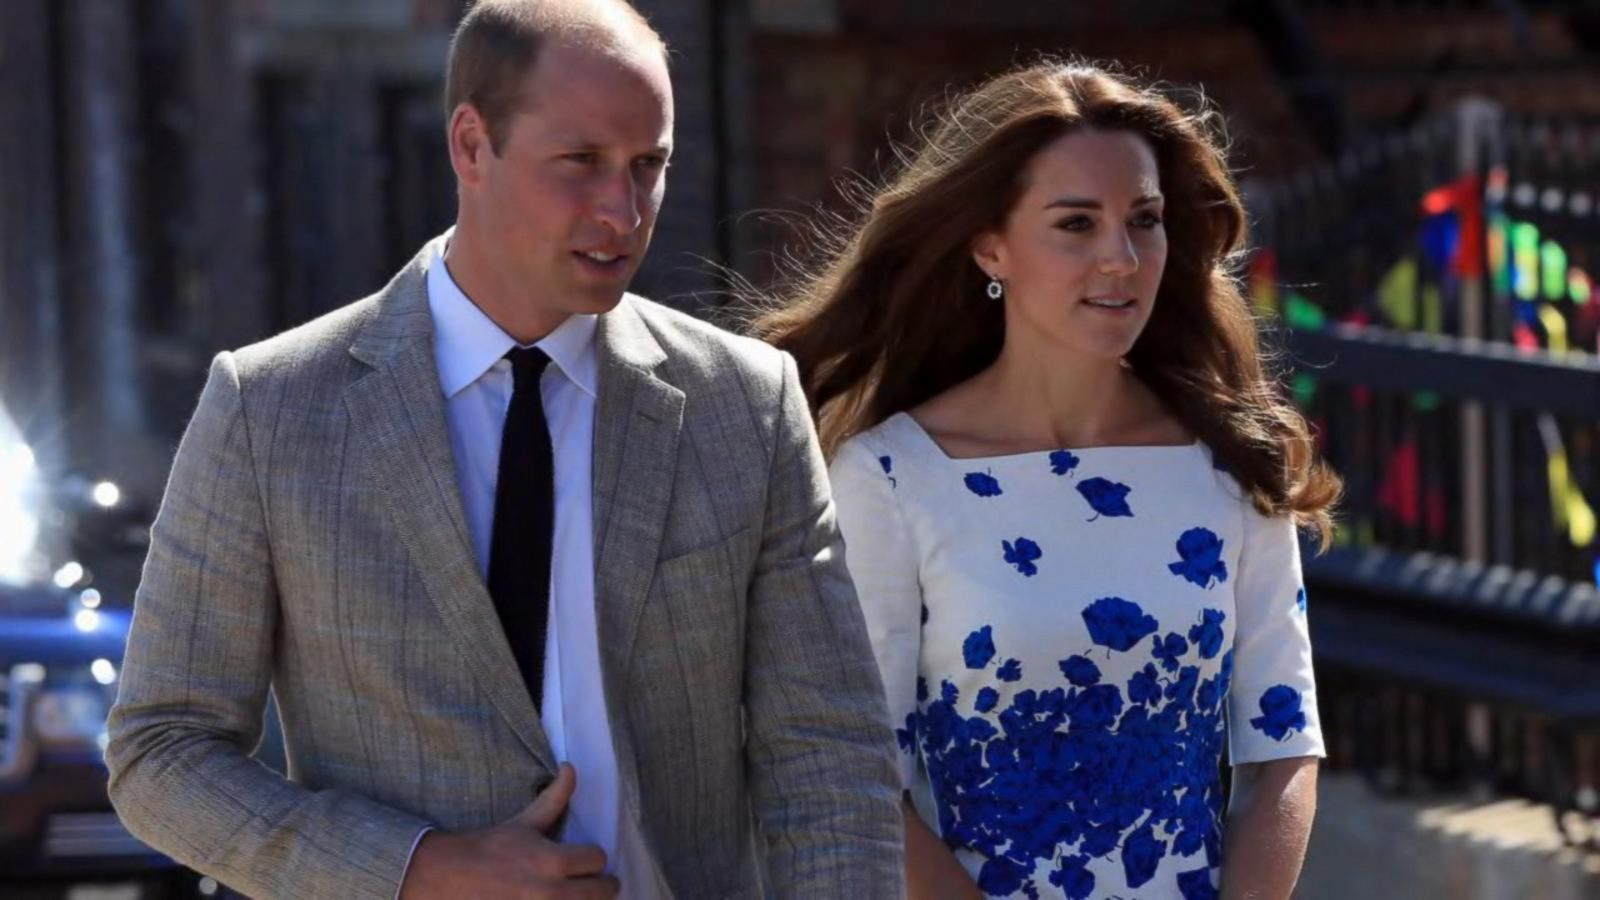 VIDEO: William and Kate Shine Spotlight on Mental Health